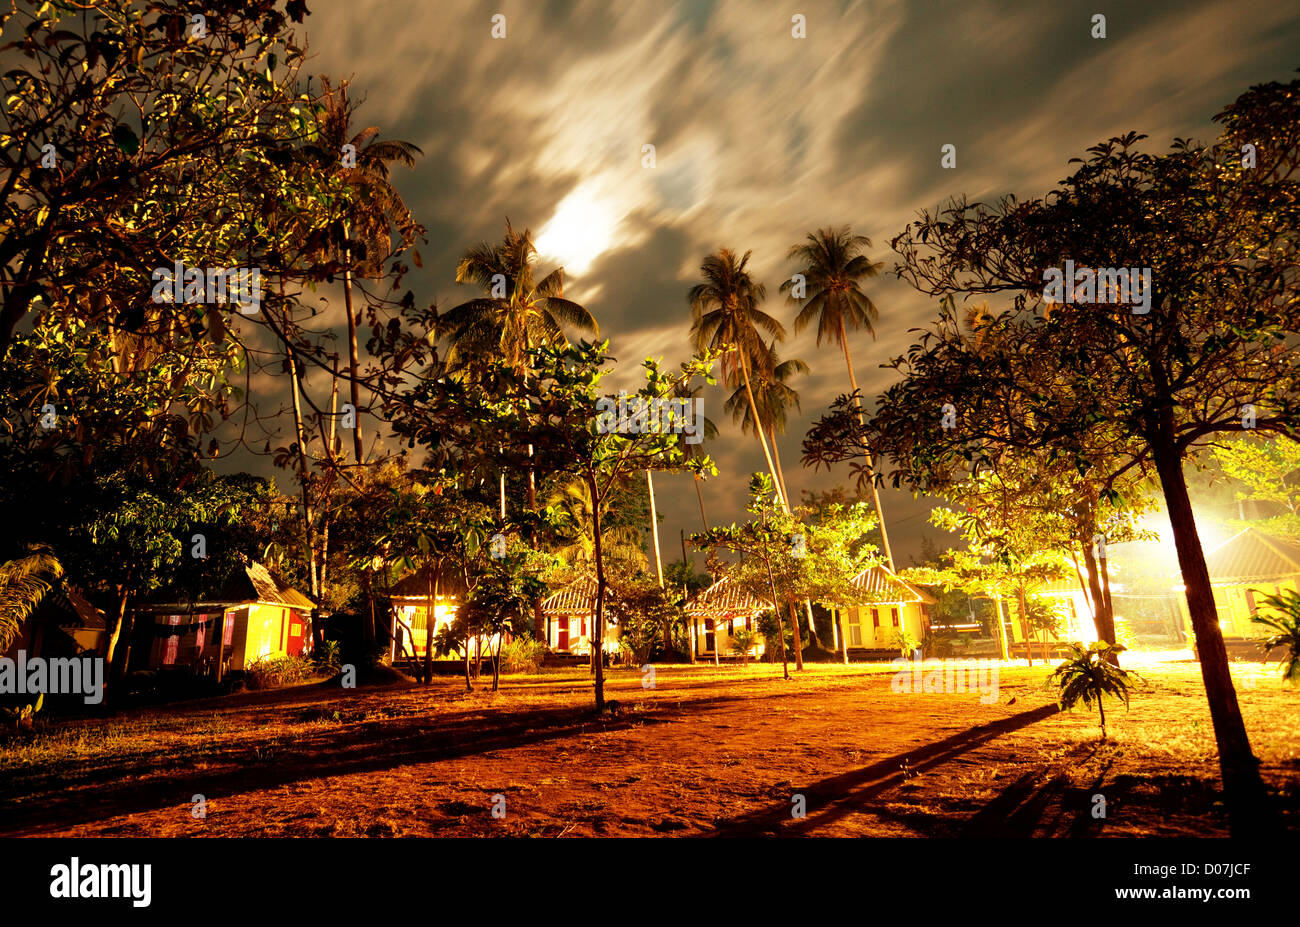 night scene - Stock Image